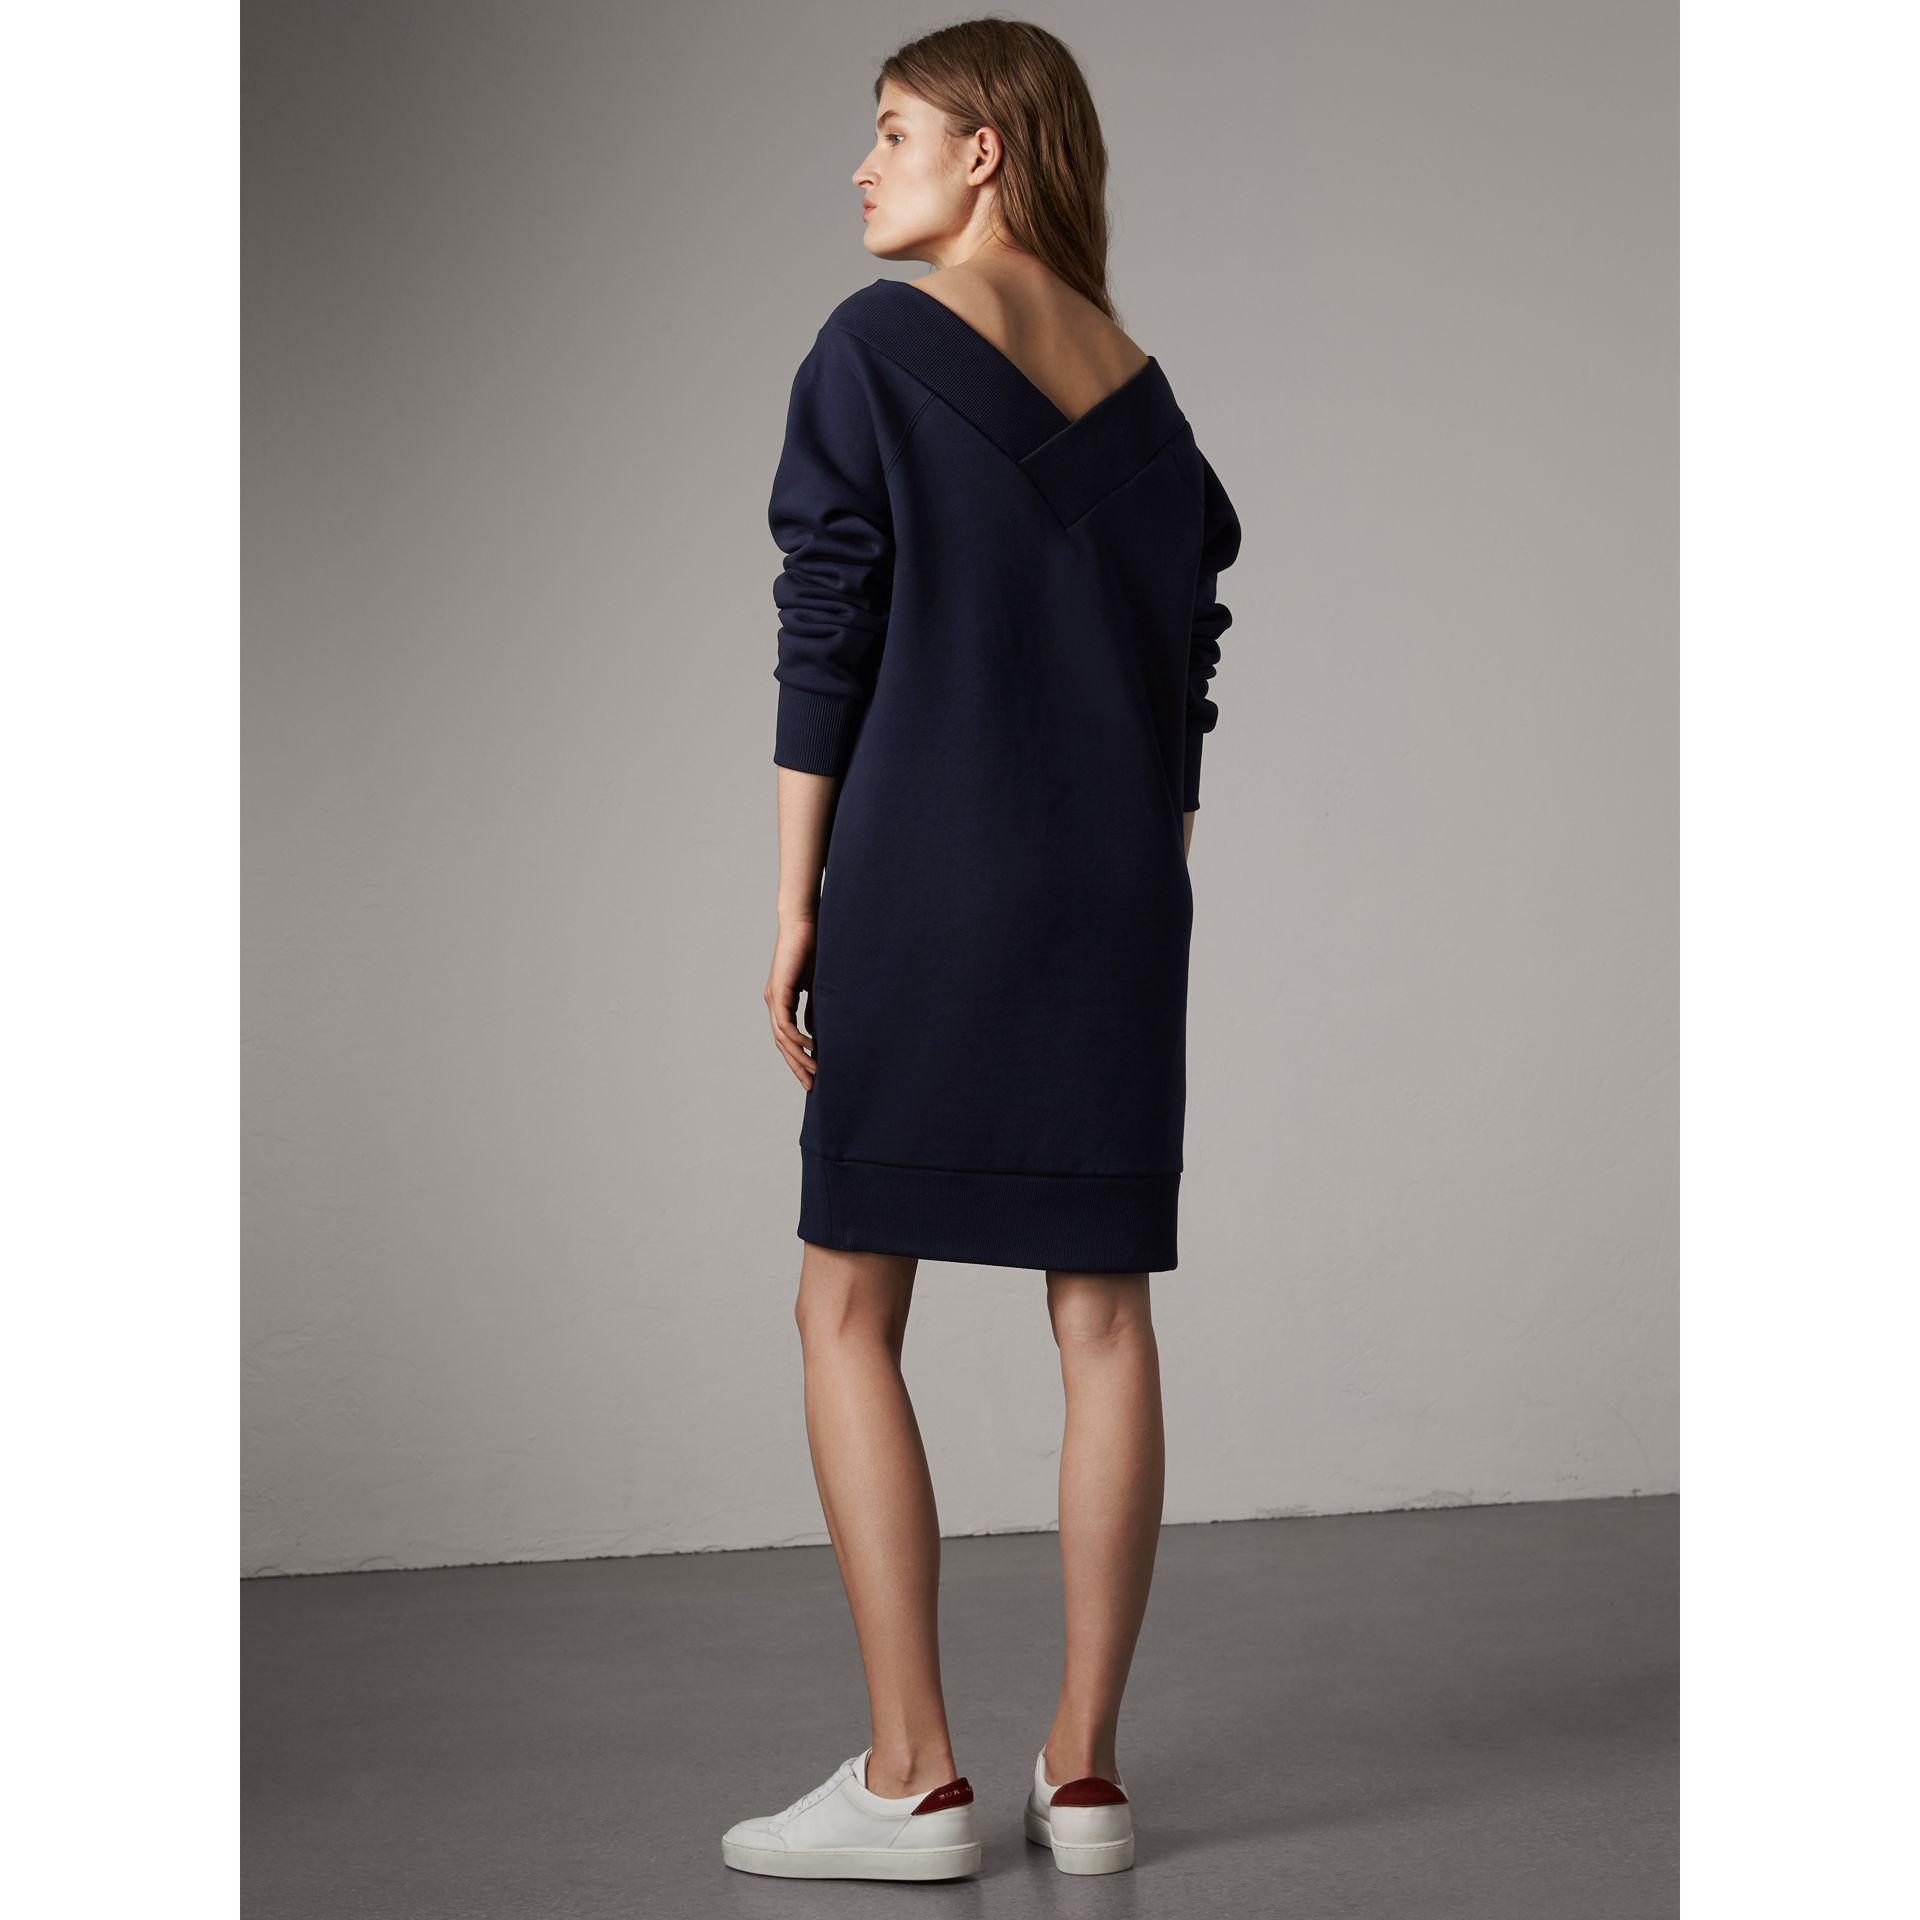 Cotton Blend V-neck Sweater Dress in Navy - Women | Burberry - gallery image 3